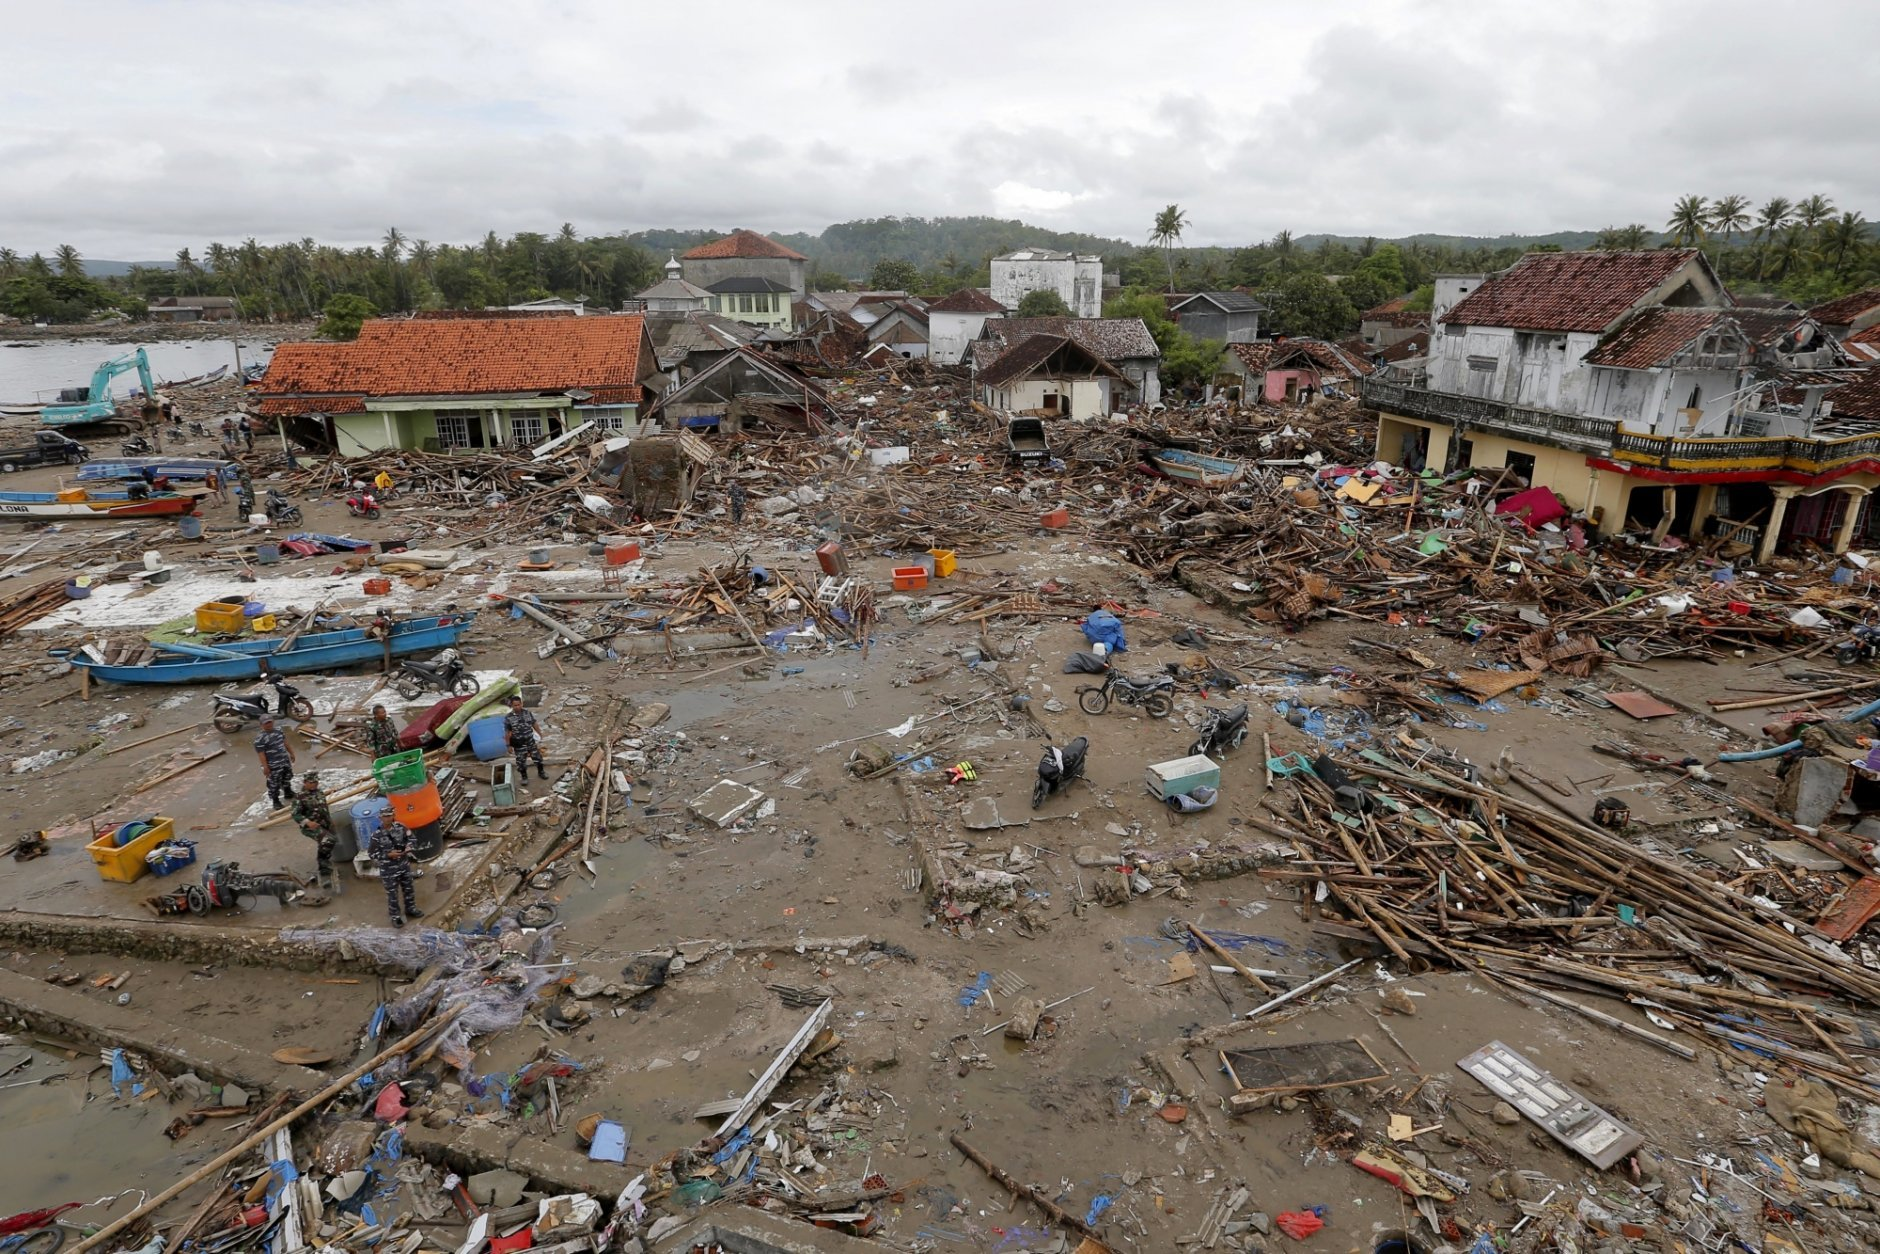 Soldiers inspect the damage at a tsunami-ravaged village in Sumur, Indonesia, Tuesday, Dec. 25, 2018. The Christmas holiday was somber with prayers for tsunami victims in the Indonesian region hit by waves that struck without warning Saturday night.(AP Photo/Tatan Syuflana)